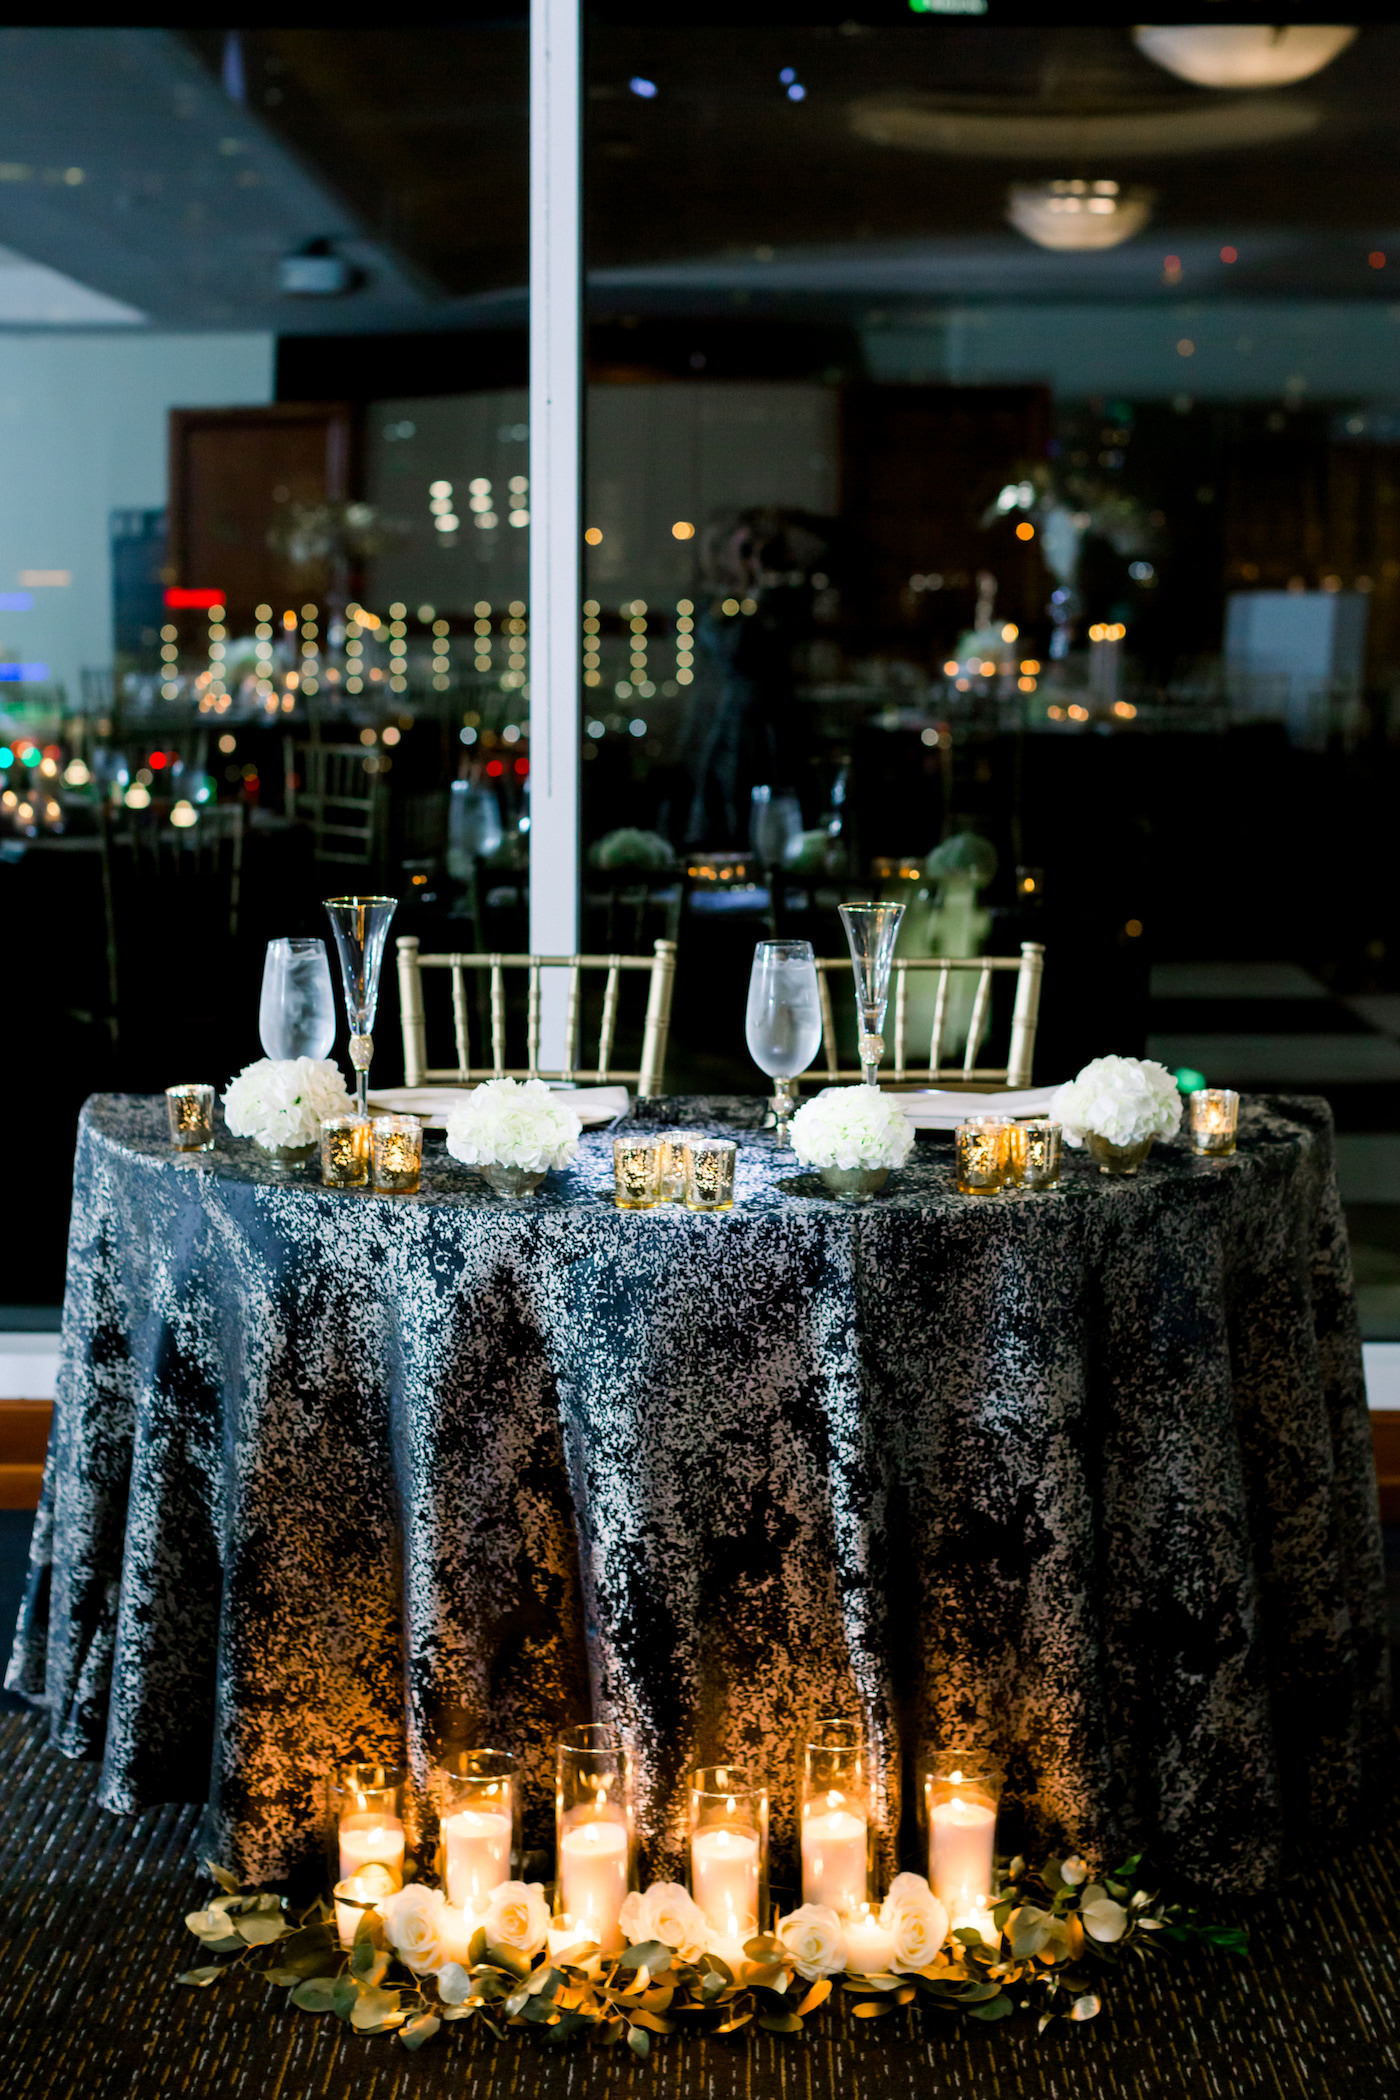 Formal New Year's Eve Wedding Reception Decor, Sweetheart Table with Black and Gold Tablecloth, Romantic Candles and Greenery, Gold Chiavari Chairs | Wedding Photographer Shauna and Jordon Photography | Tampa Bay Wedding Planner UNIQUE Weddings + Events, Wedding Rentals A Chair Affair